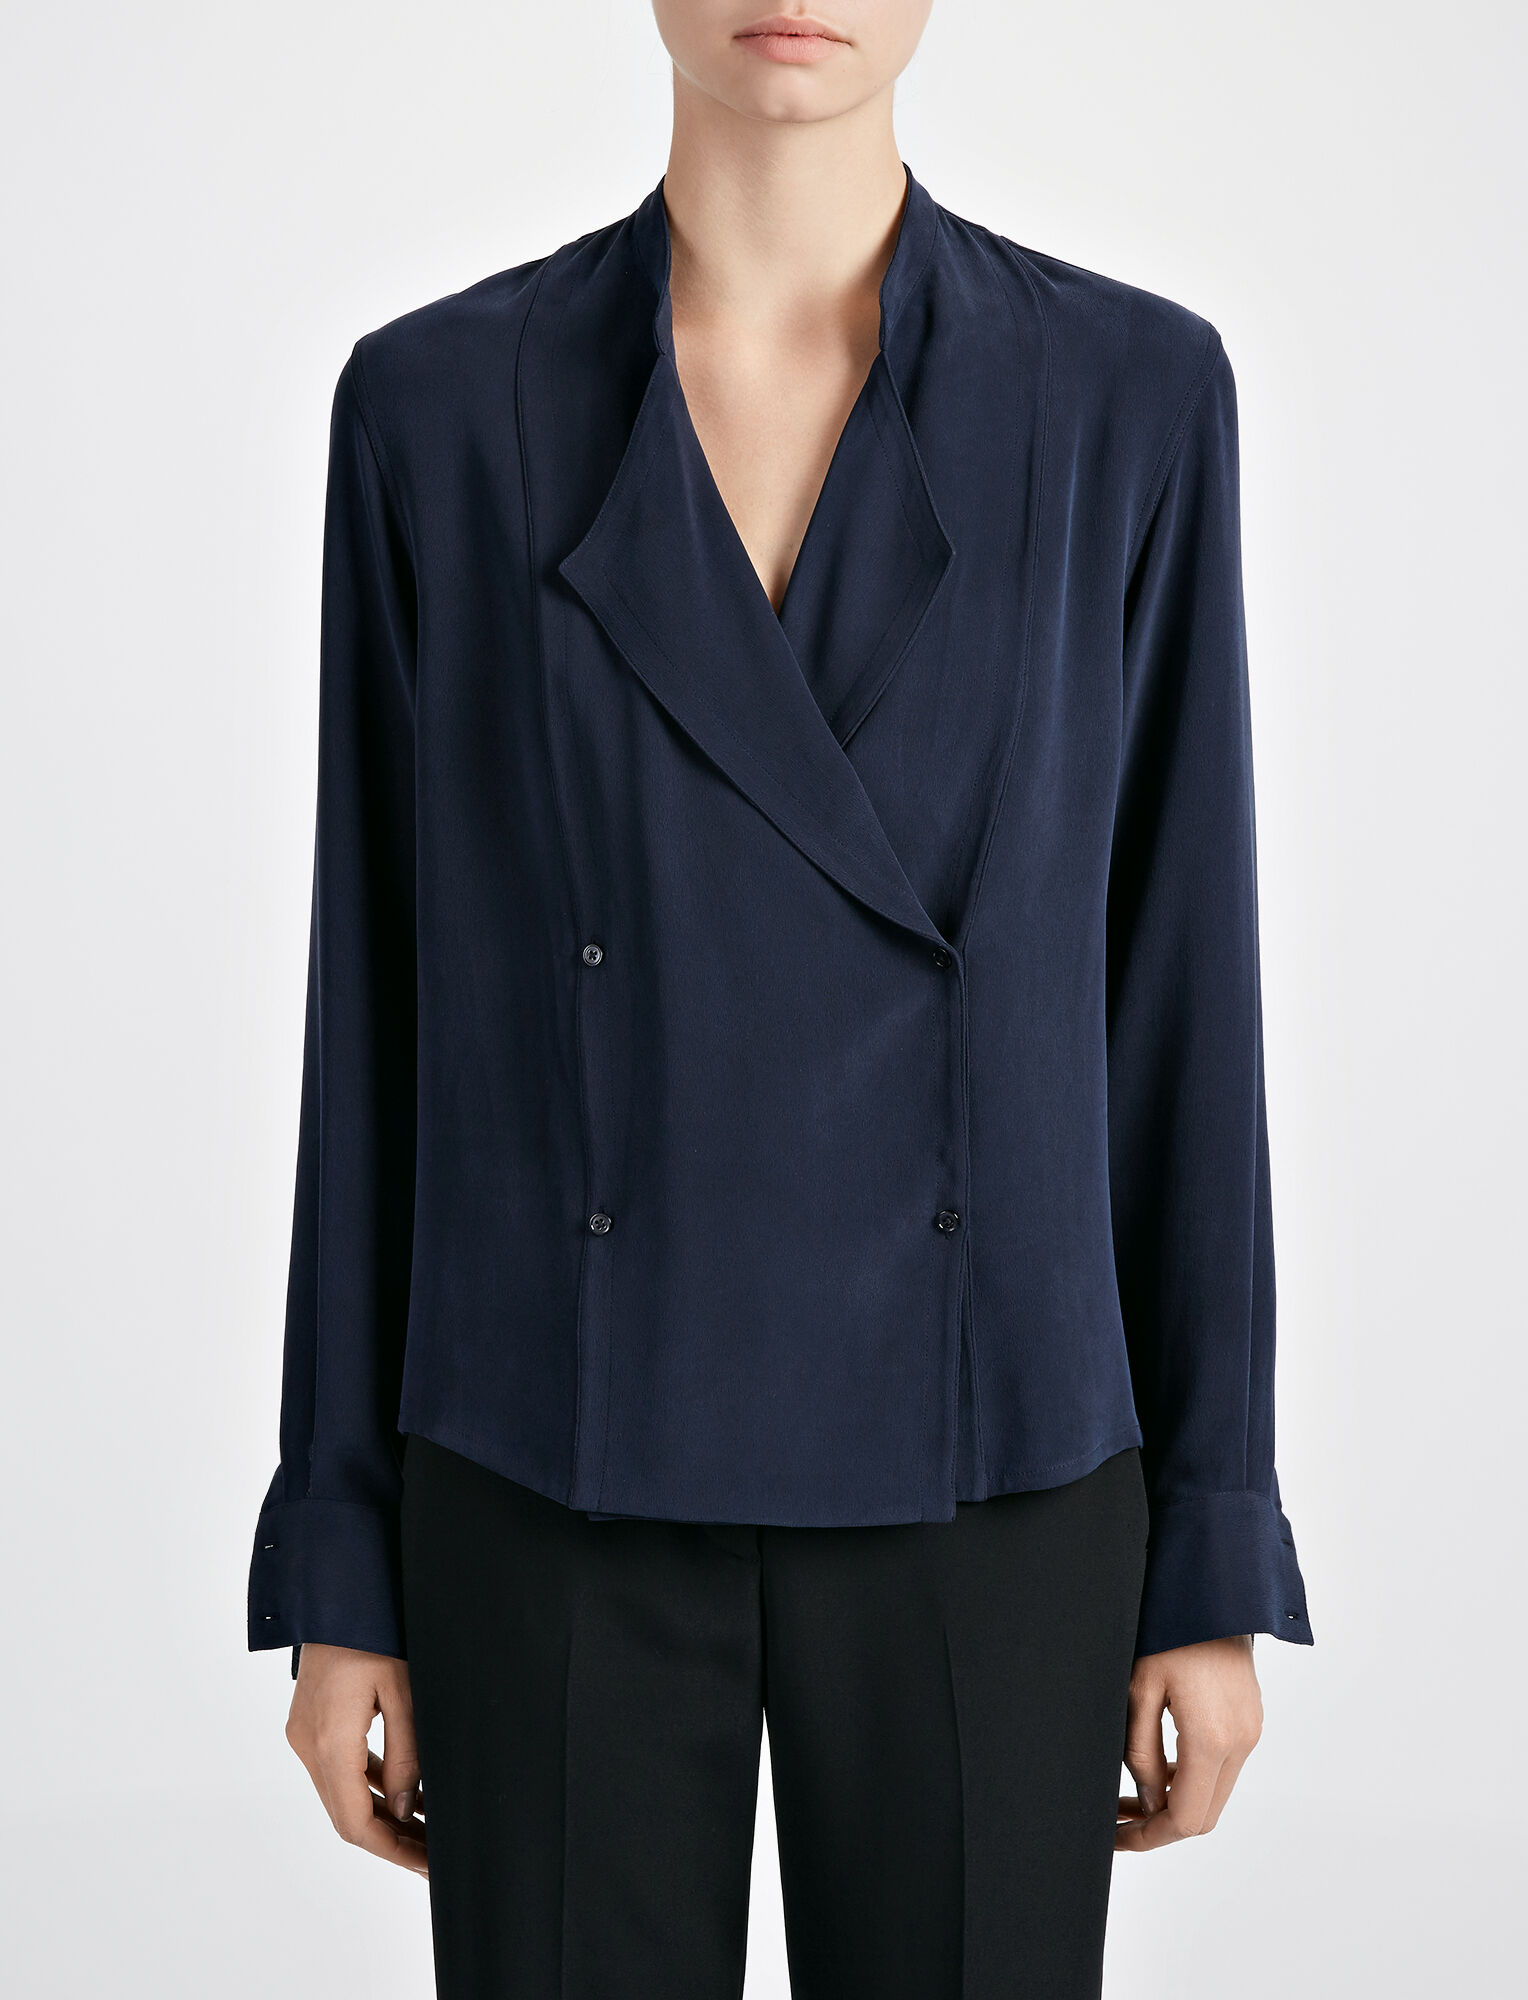 Joseph, Matt Silk Jerry Blouse, in NAVY